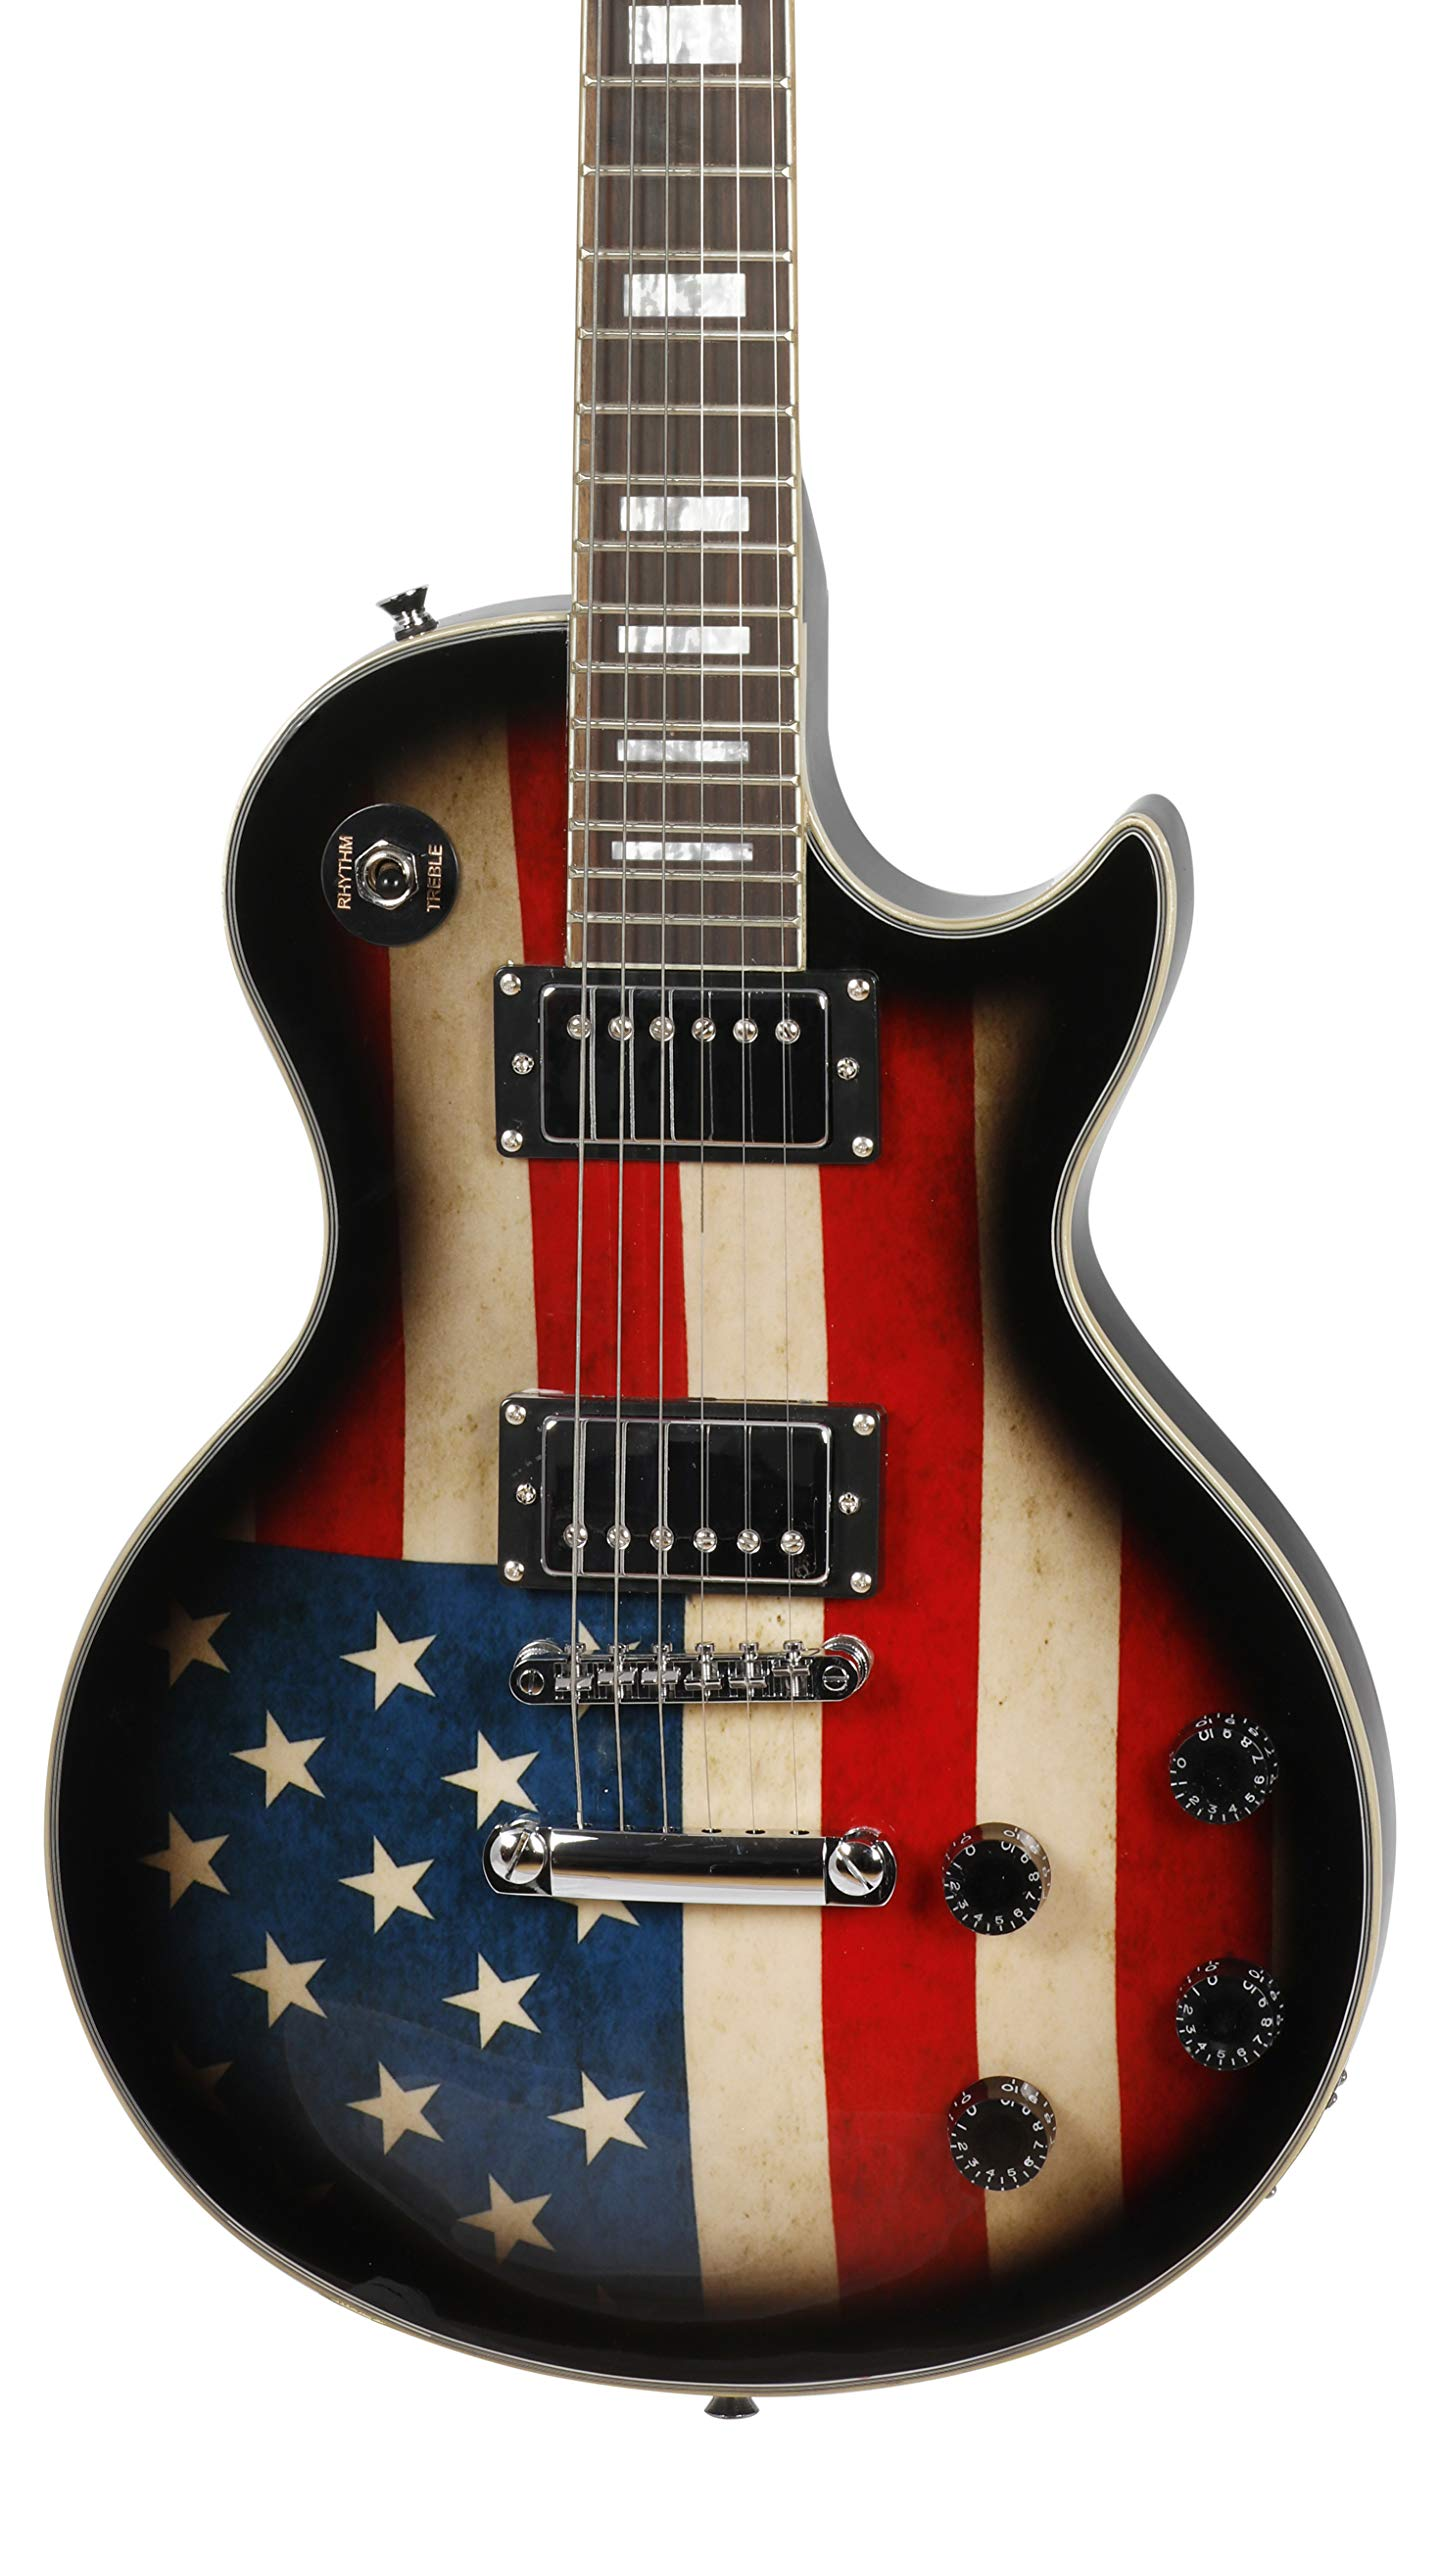 Leo Jaymz Single cut curved top electric guitar 24.72'' scale-US Flag graphic on top and Grover machine heads installed- super light colored ball end string set. by Leo Jaymz (Image #3)